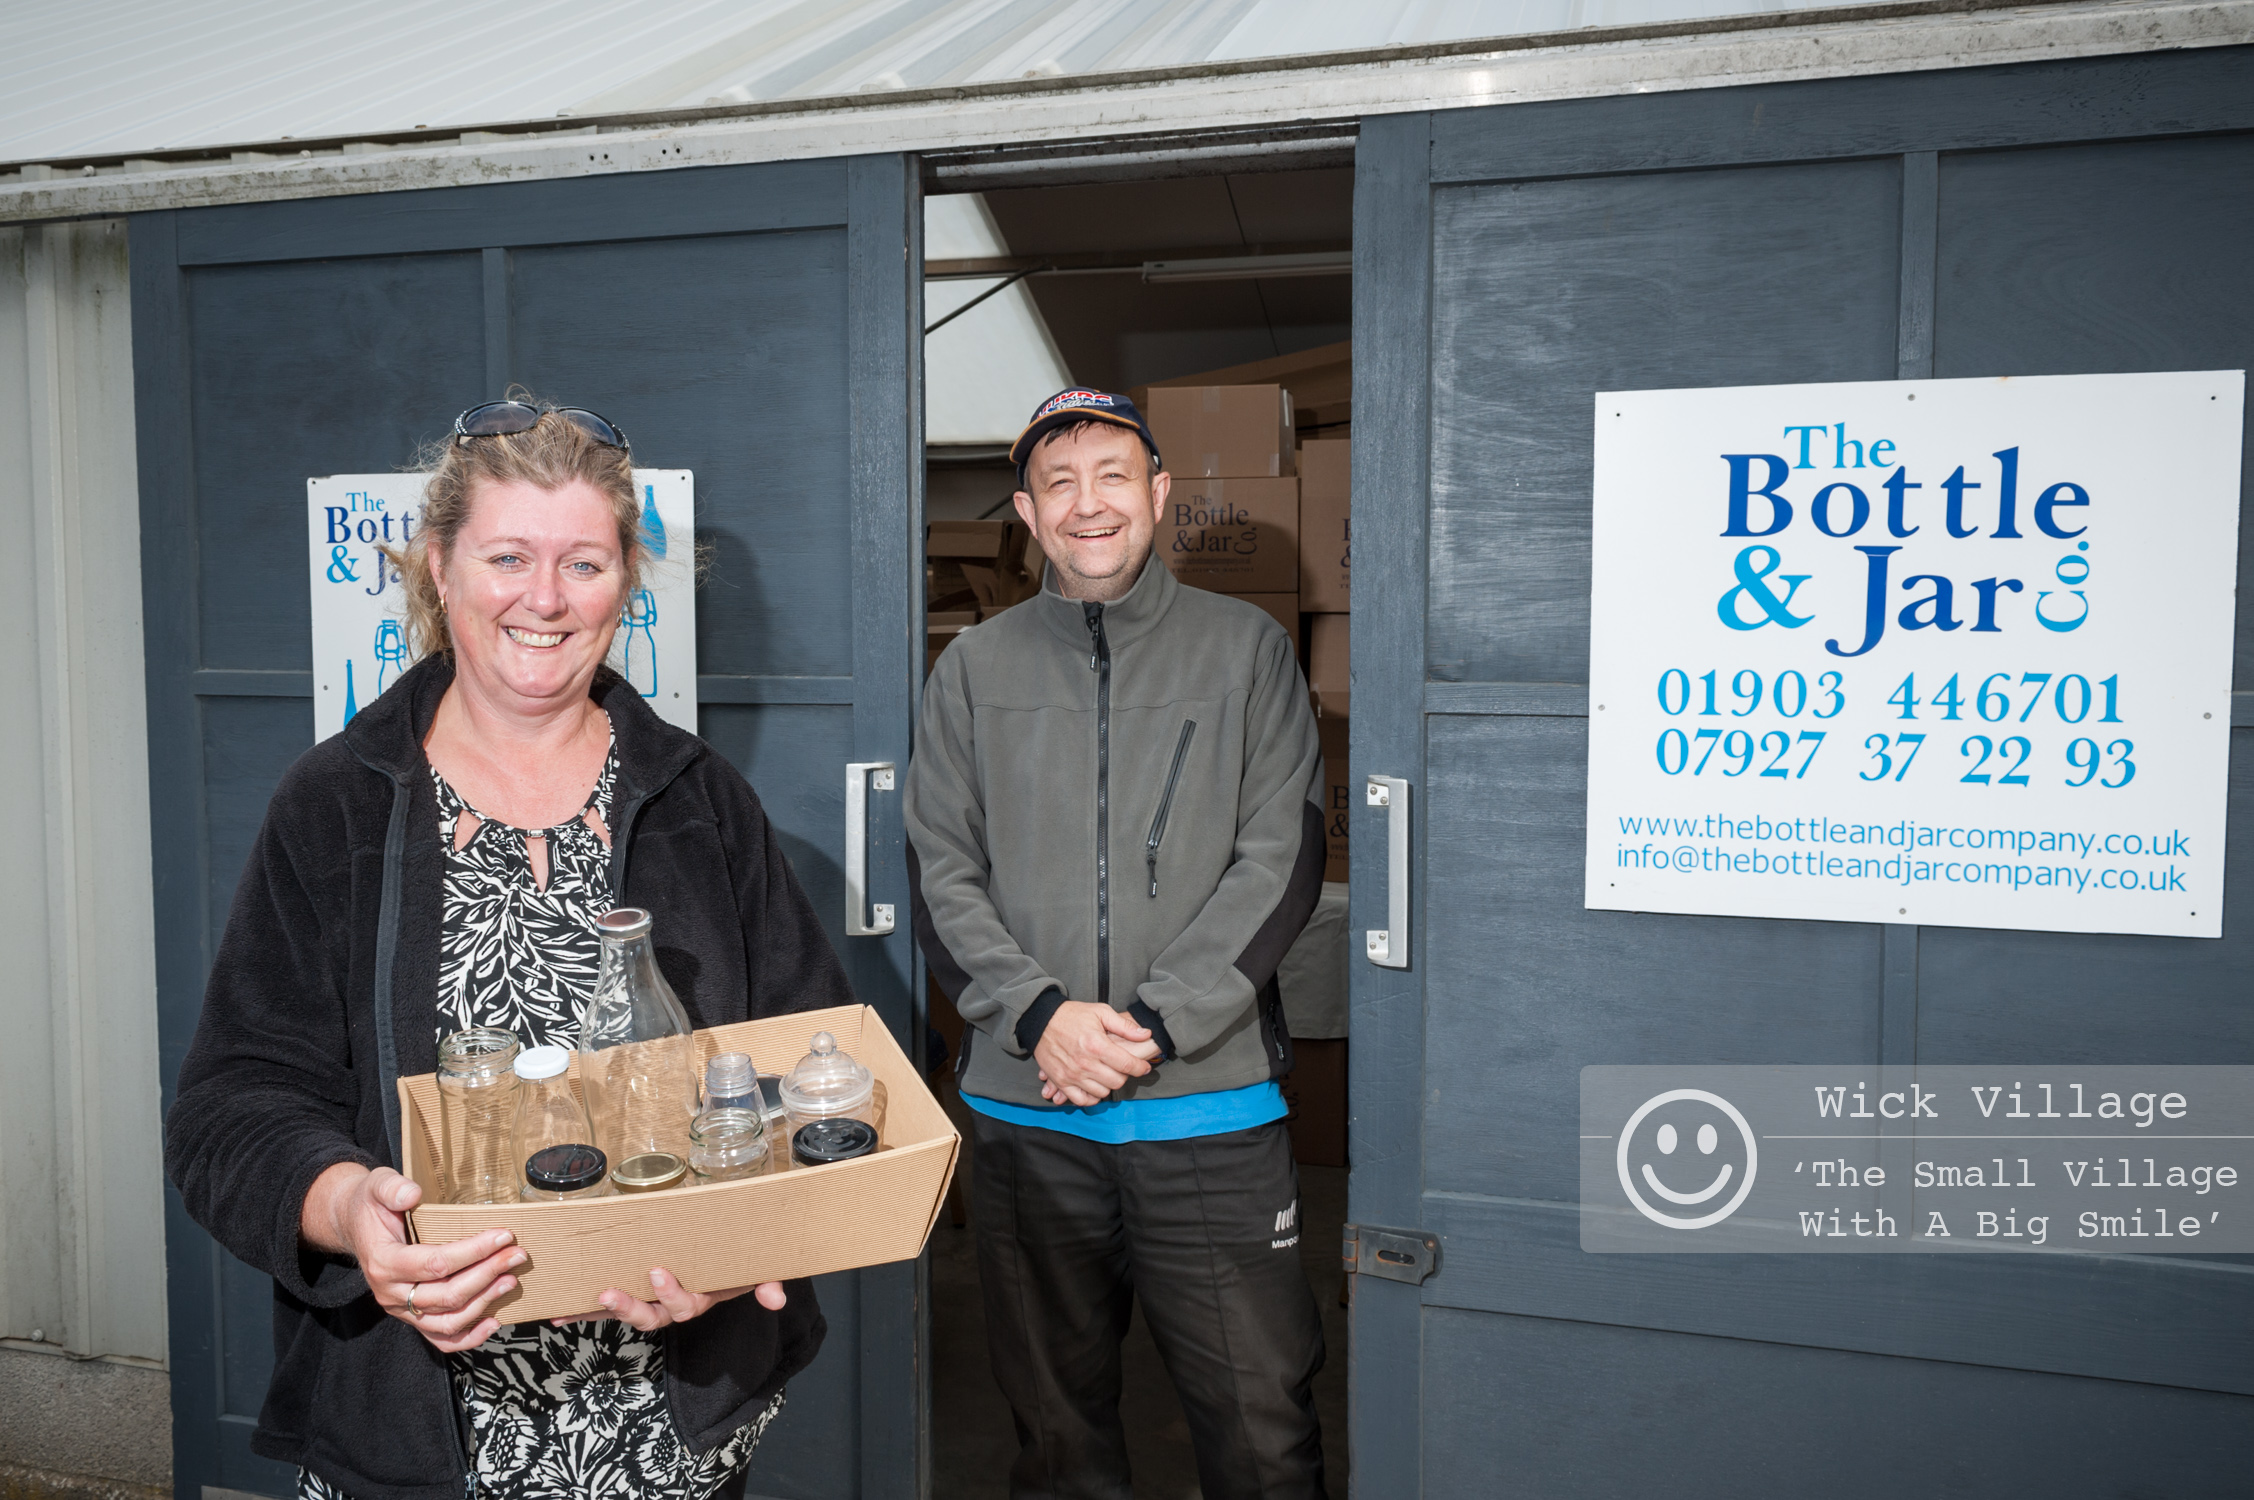 Kathy Vowles and Andy Woods from The Bottle & Jar Company outside their business premises in Wick, Littlehampton. Photo © Scott Ramsey/Wick Village Traders Association.